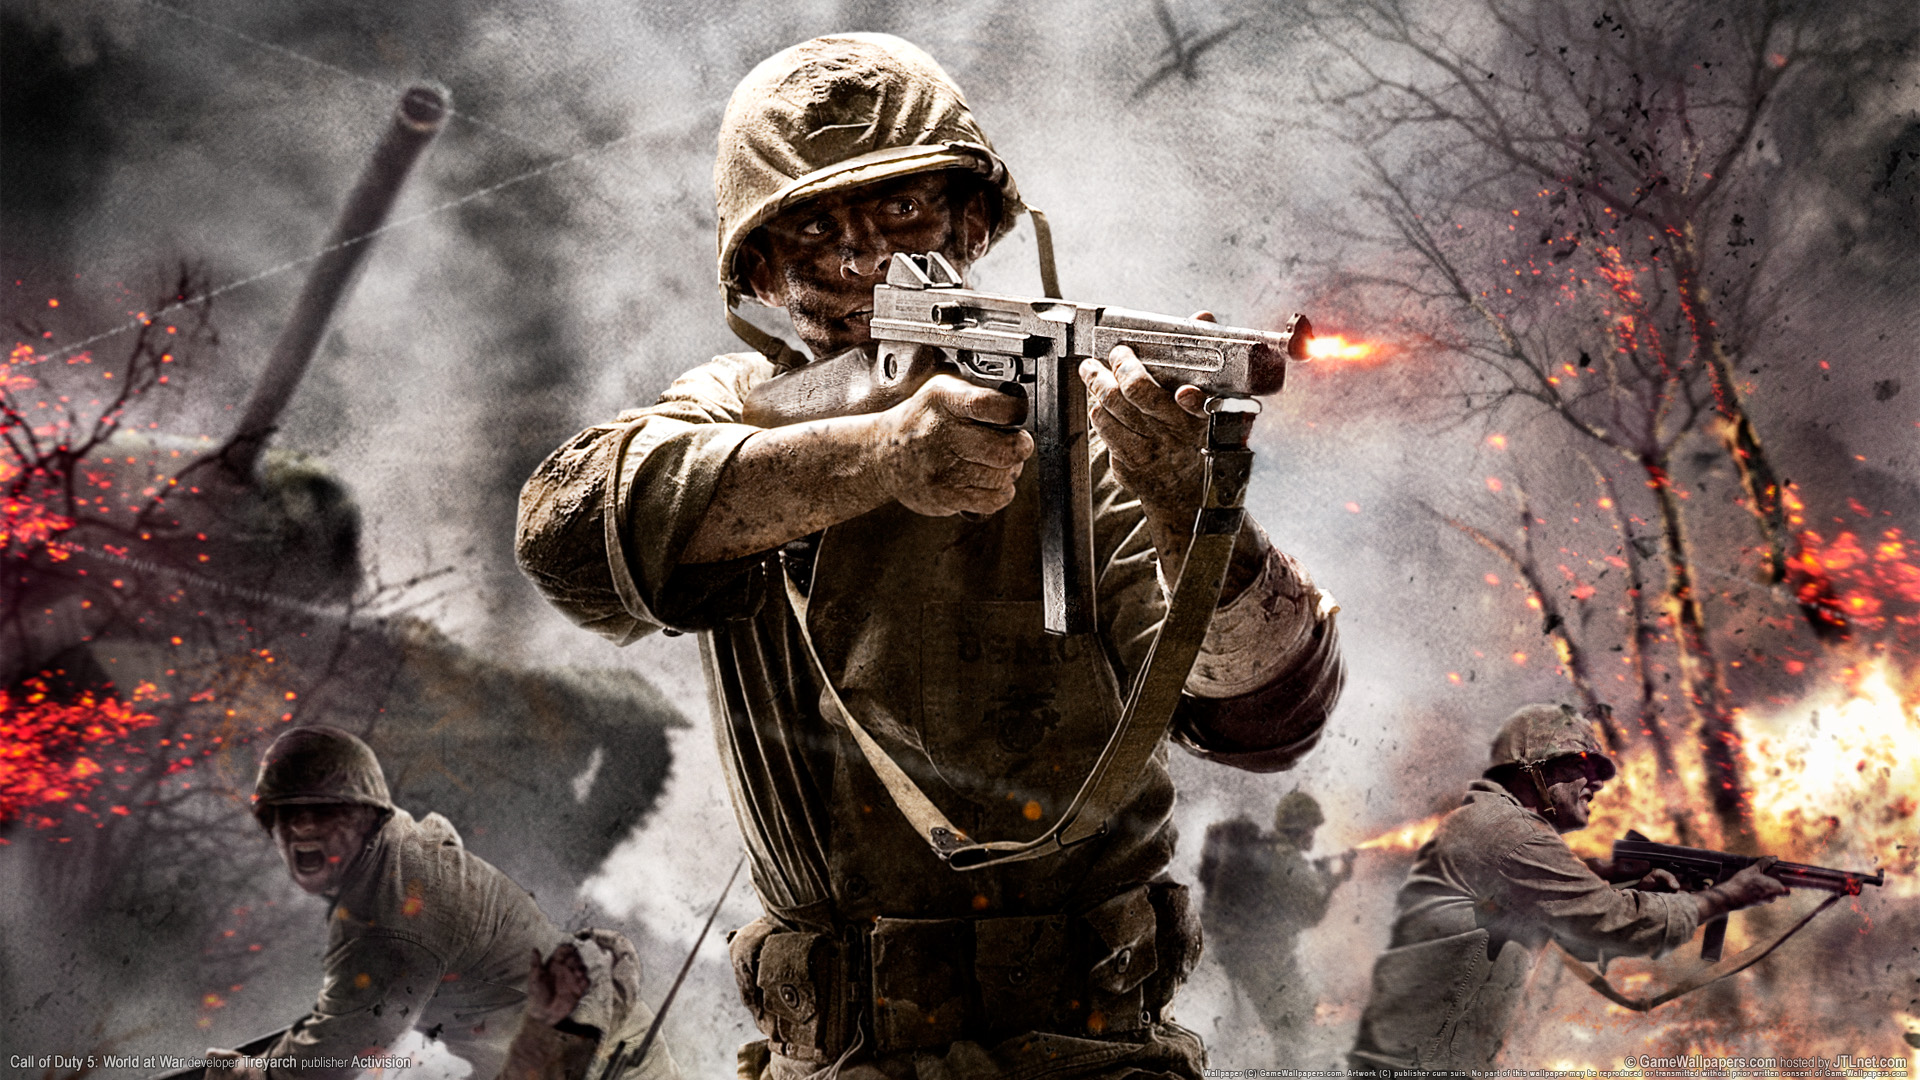 Wallpaper Call Of Duty 5 World At War